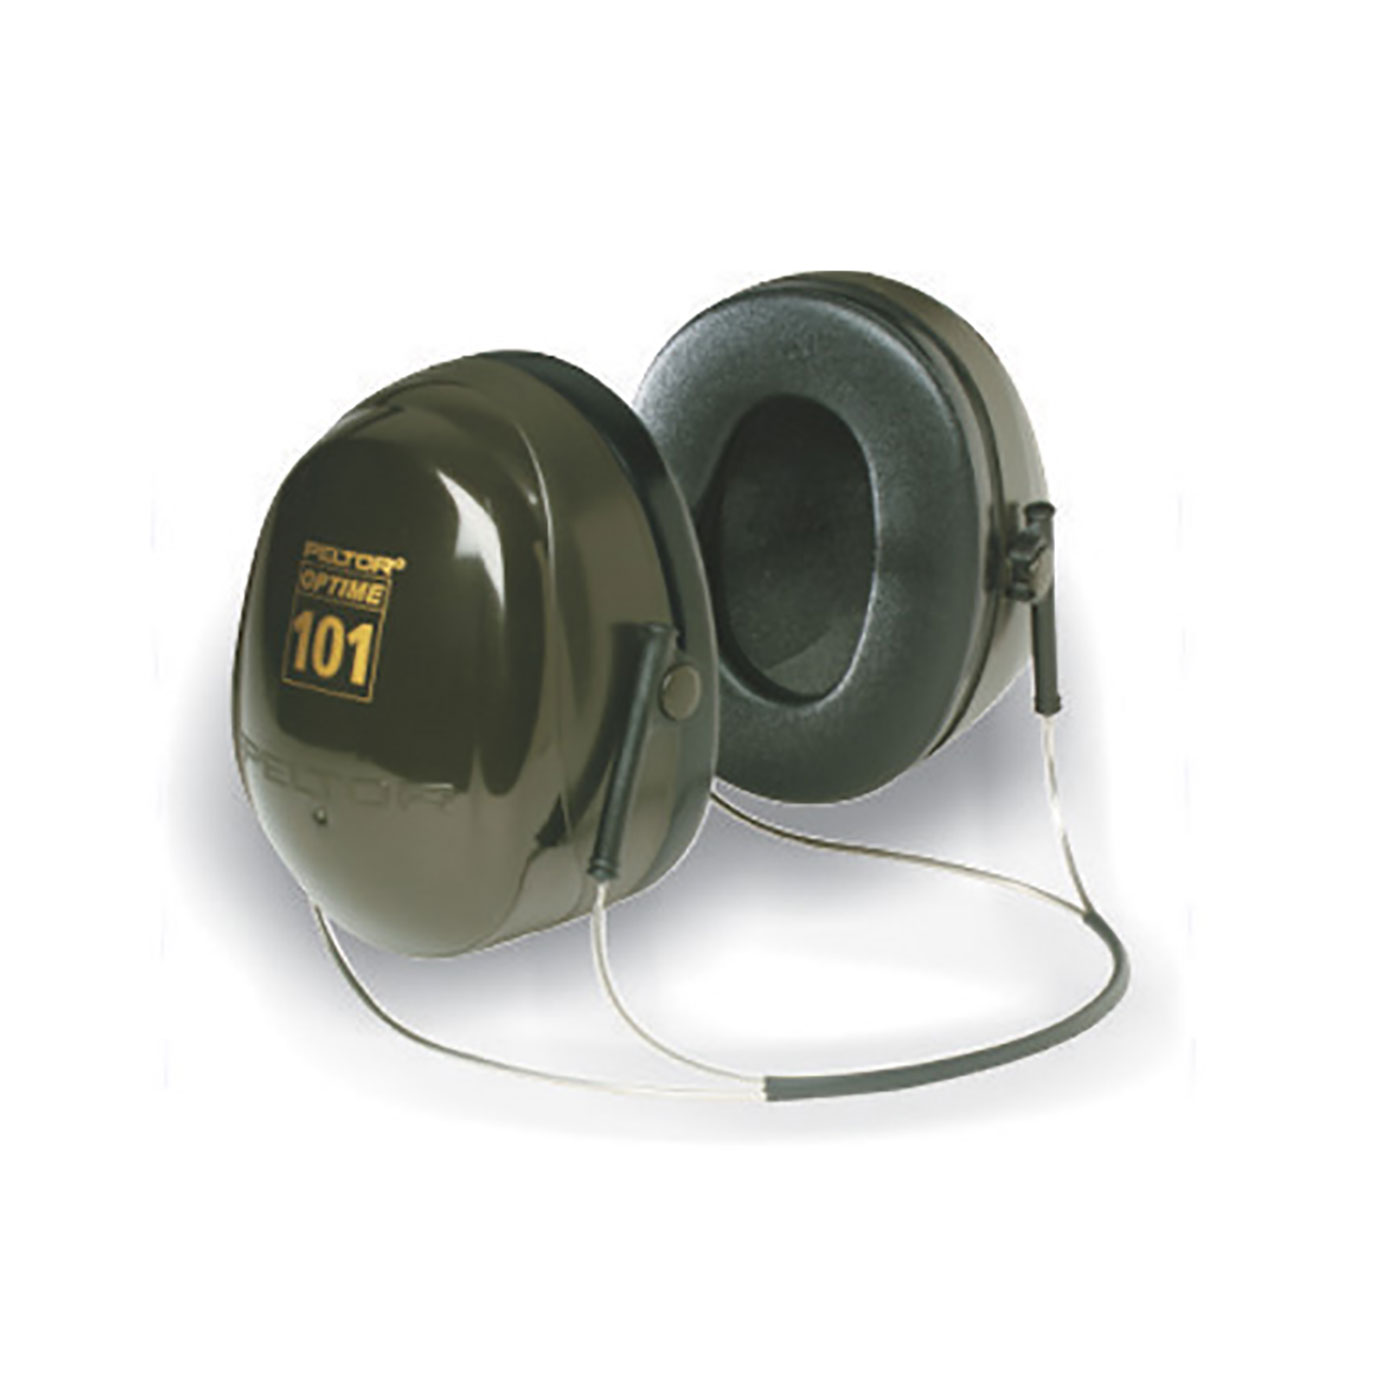 Peltor H7 Optime 101 Ear Muffs NPR 26